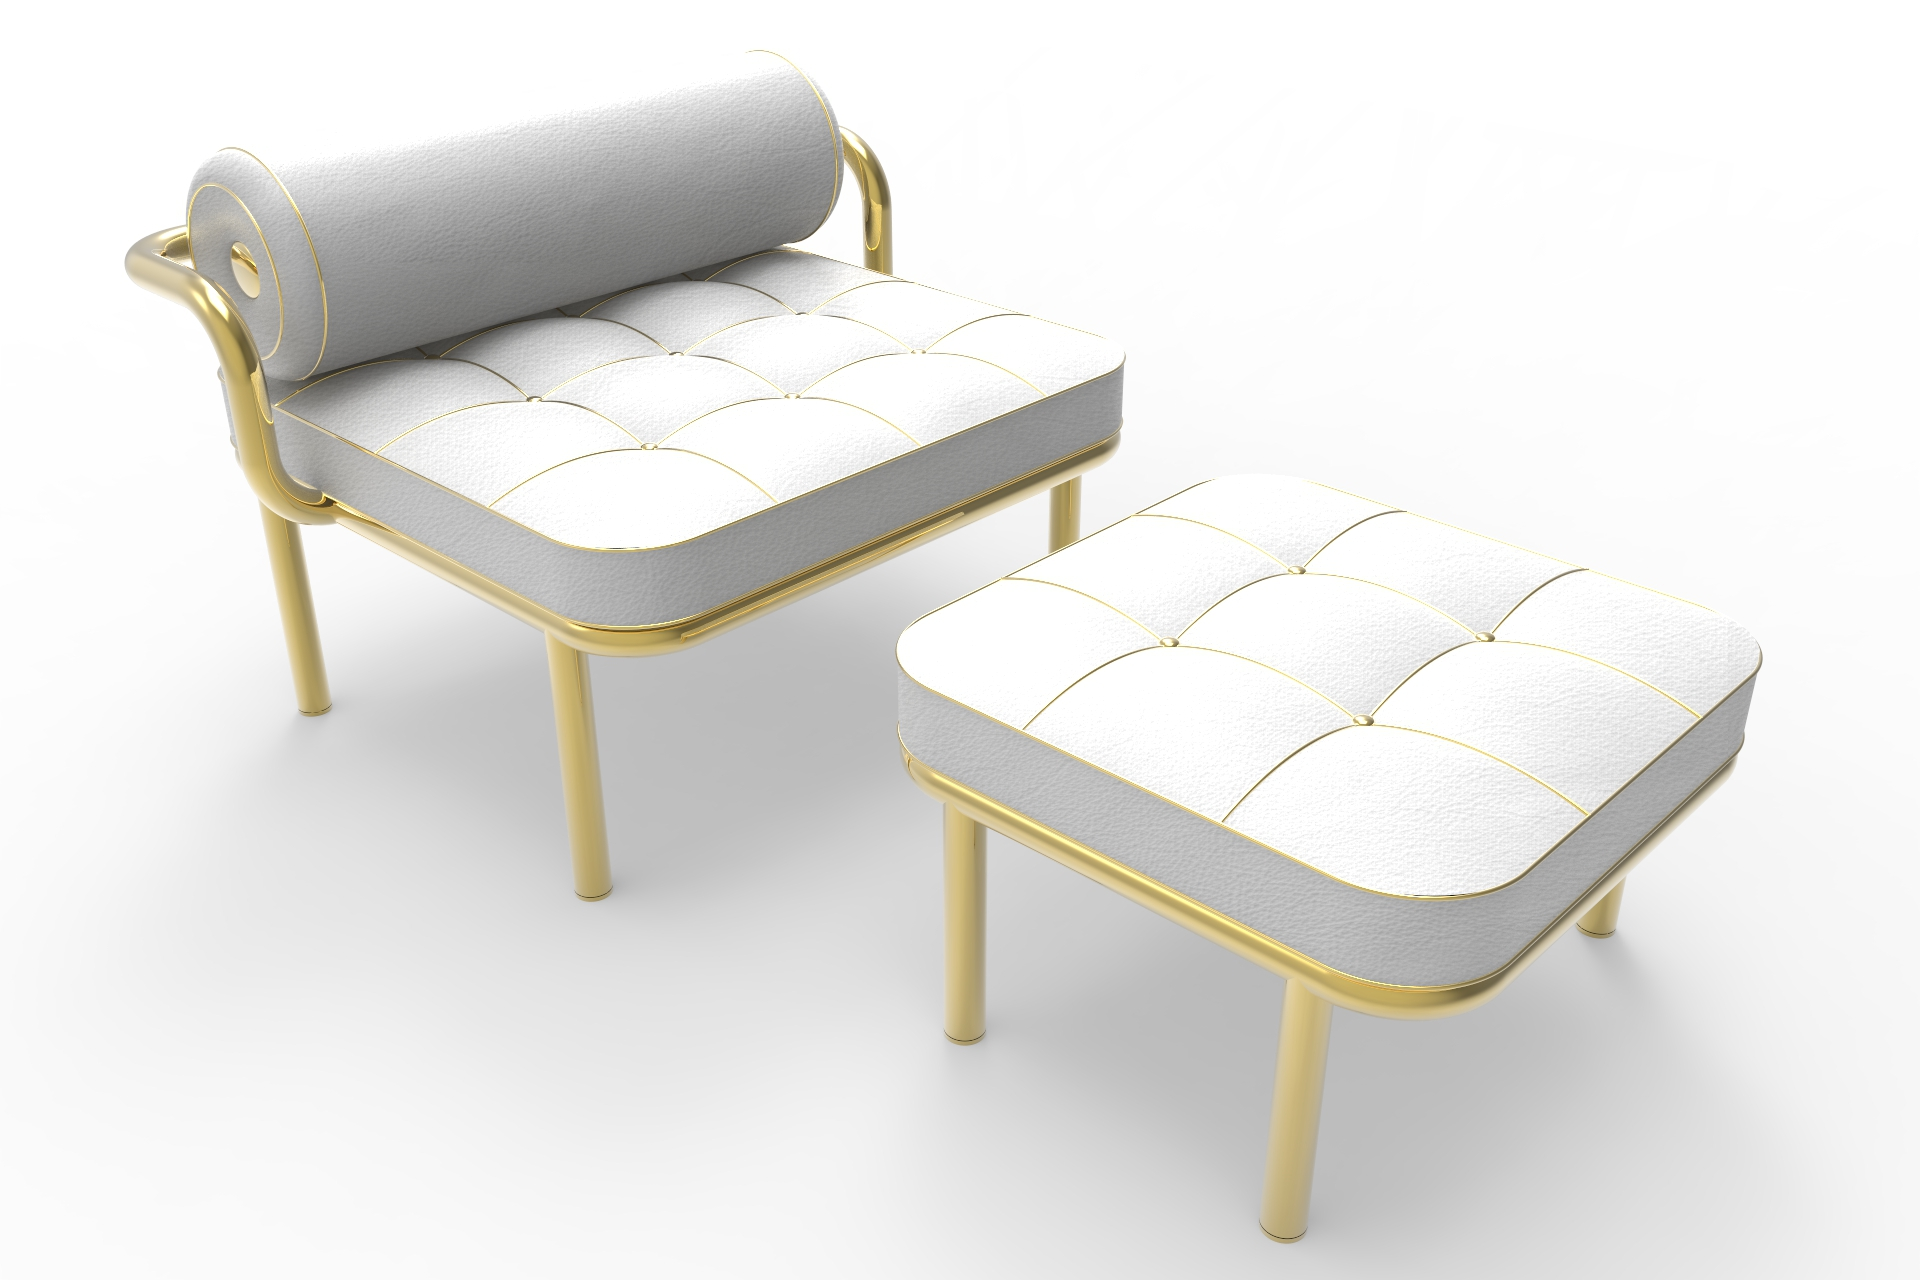 Daniele Toesca Contemporary Armchair and Footstool in Gold 24k